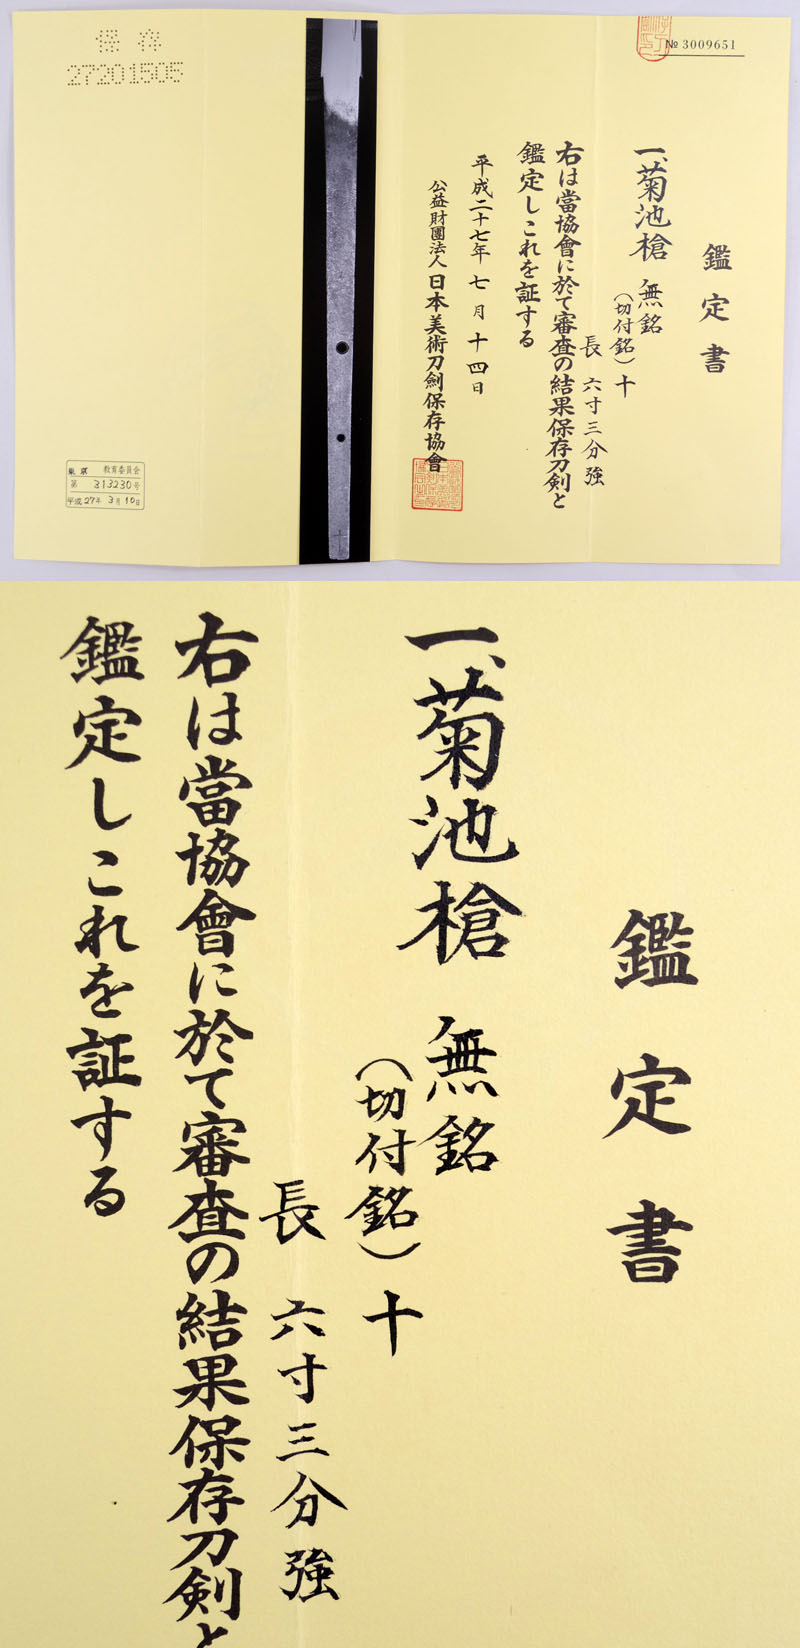 無銘(切付銘)十 Picture of Certificate